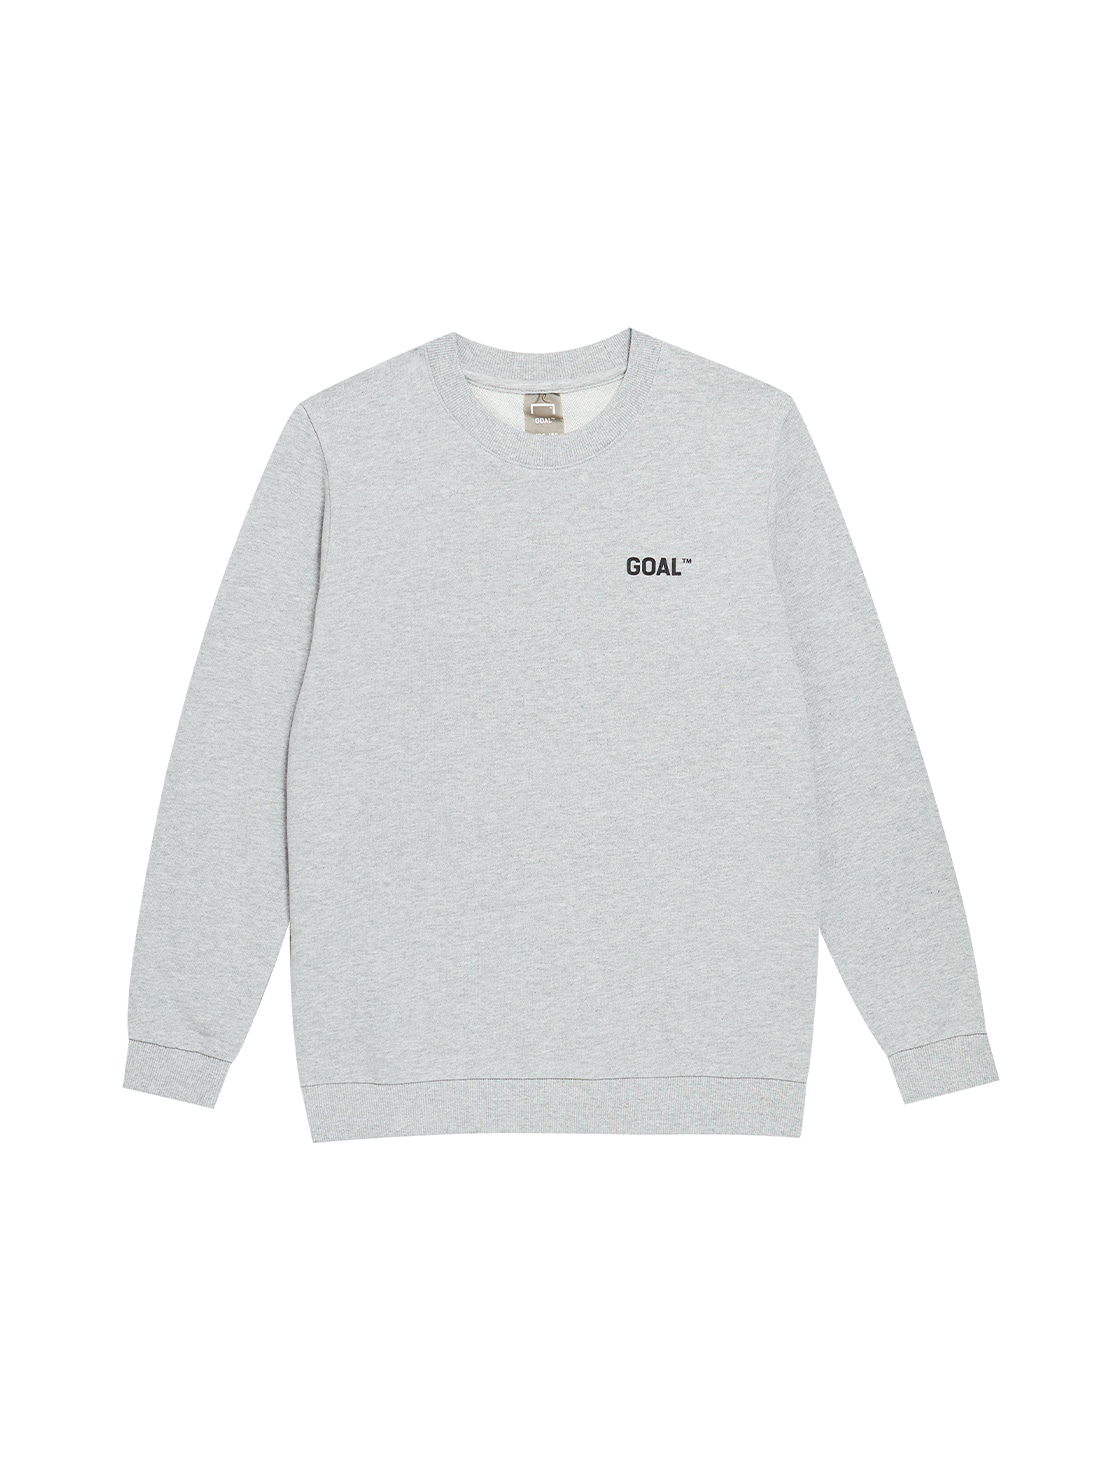 (KIDS) BACK LOGO SWEATSHIRTS - GREY